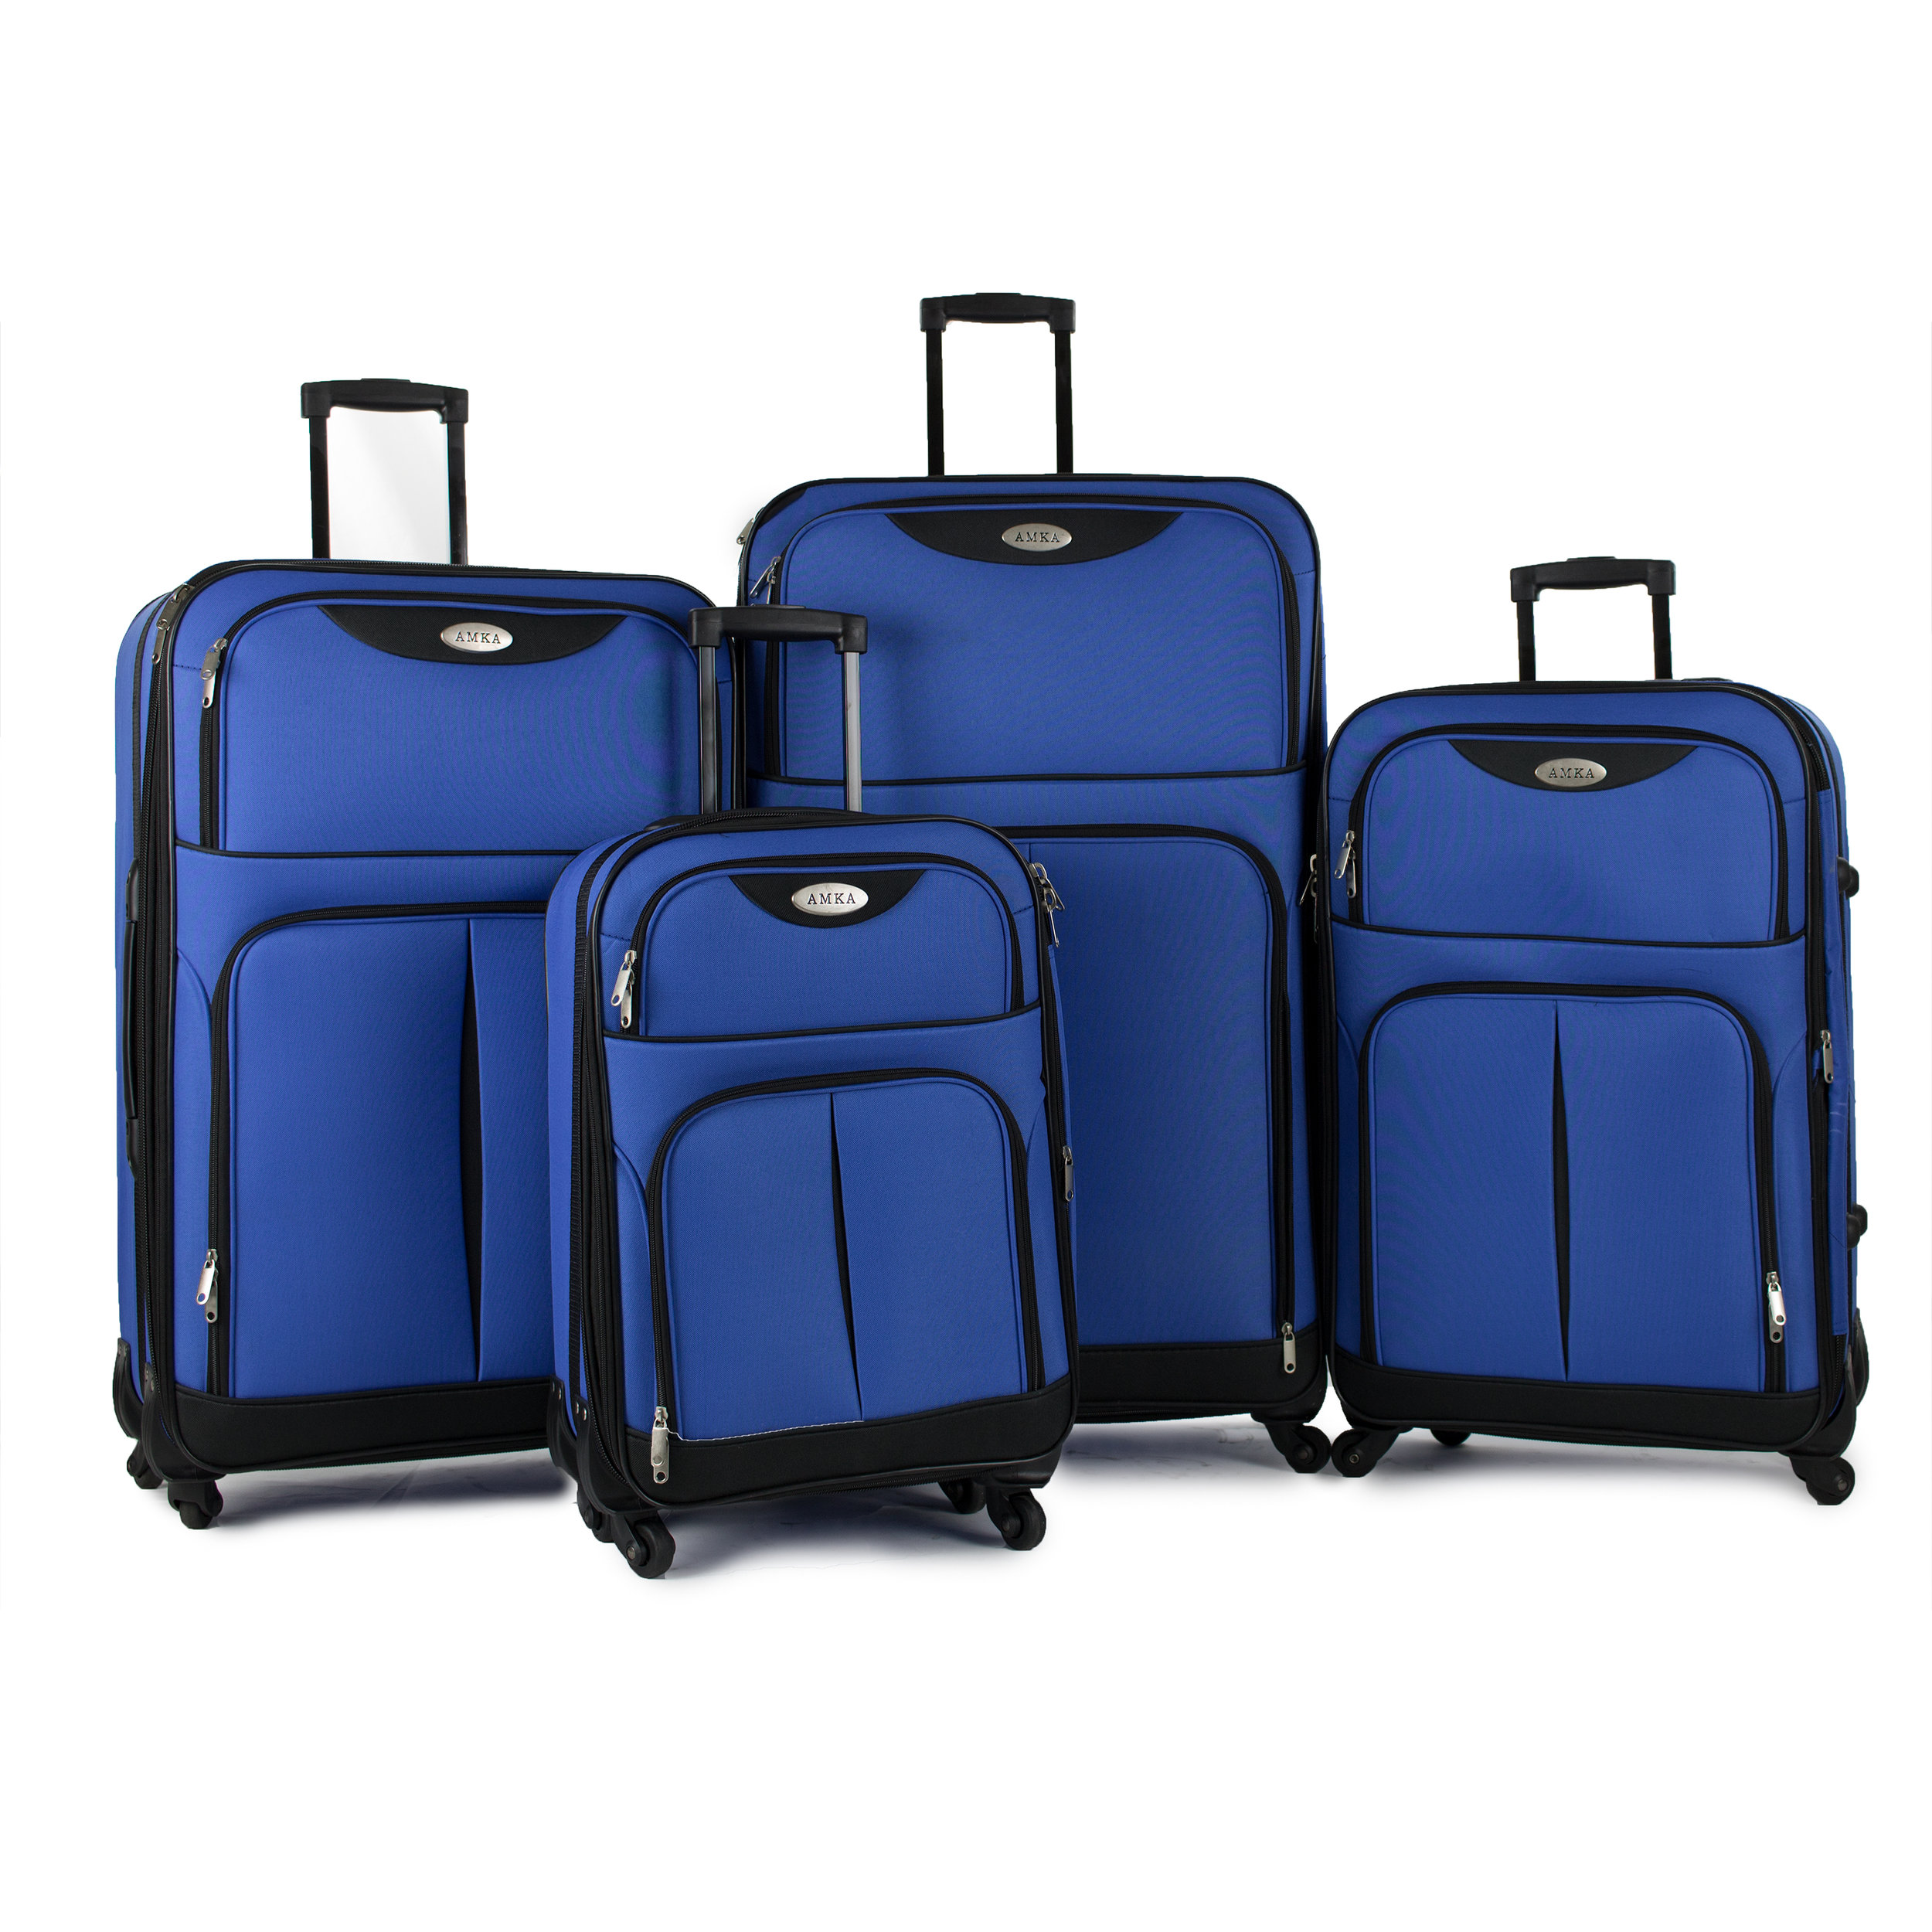 LD506-4W_Blue_4-Set_3000.jpg